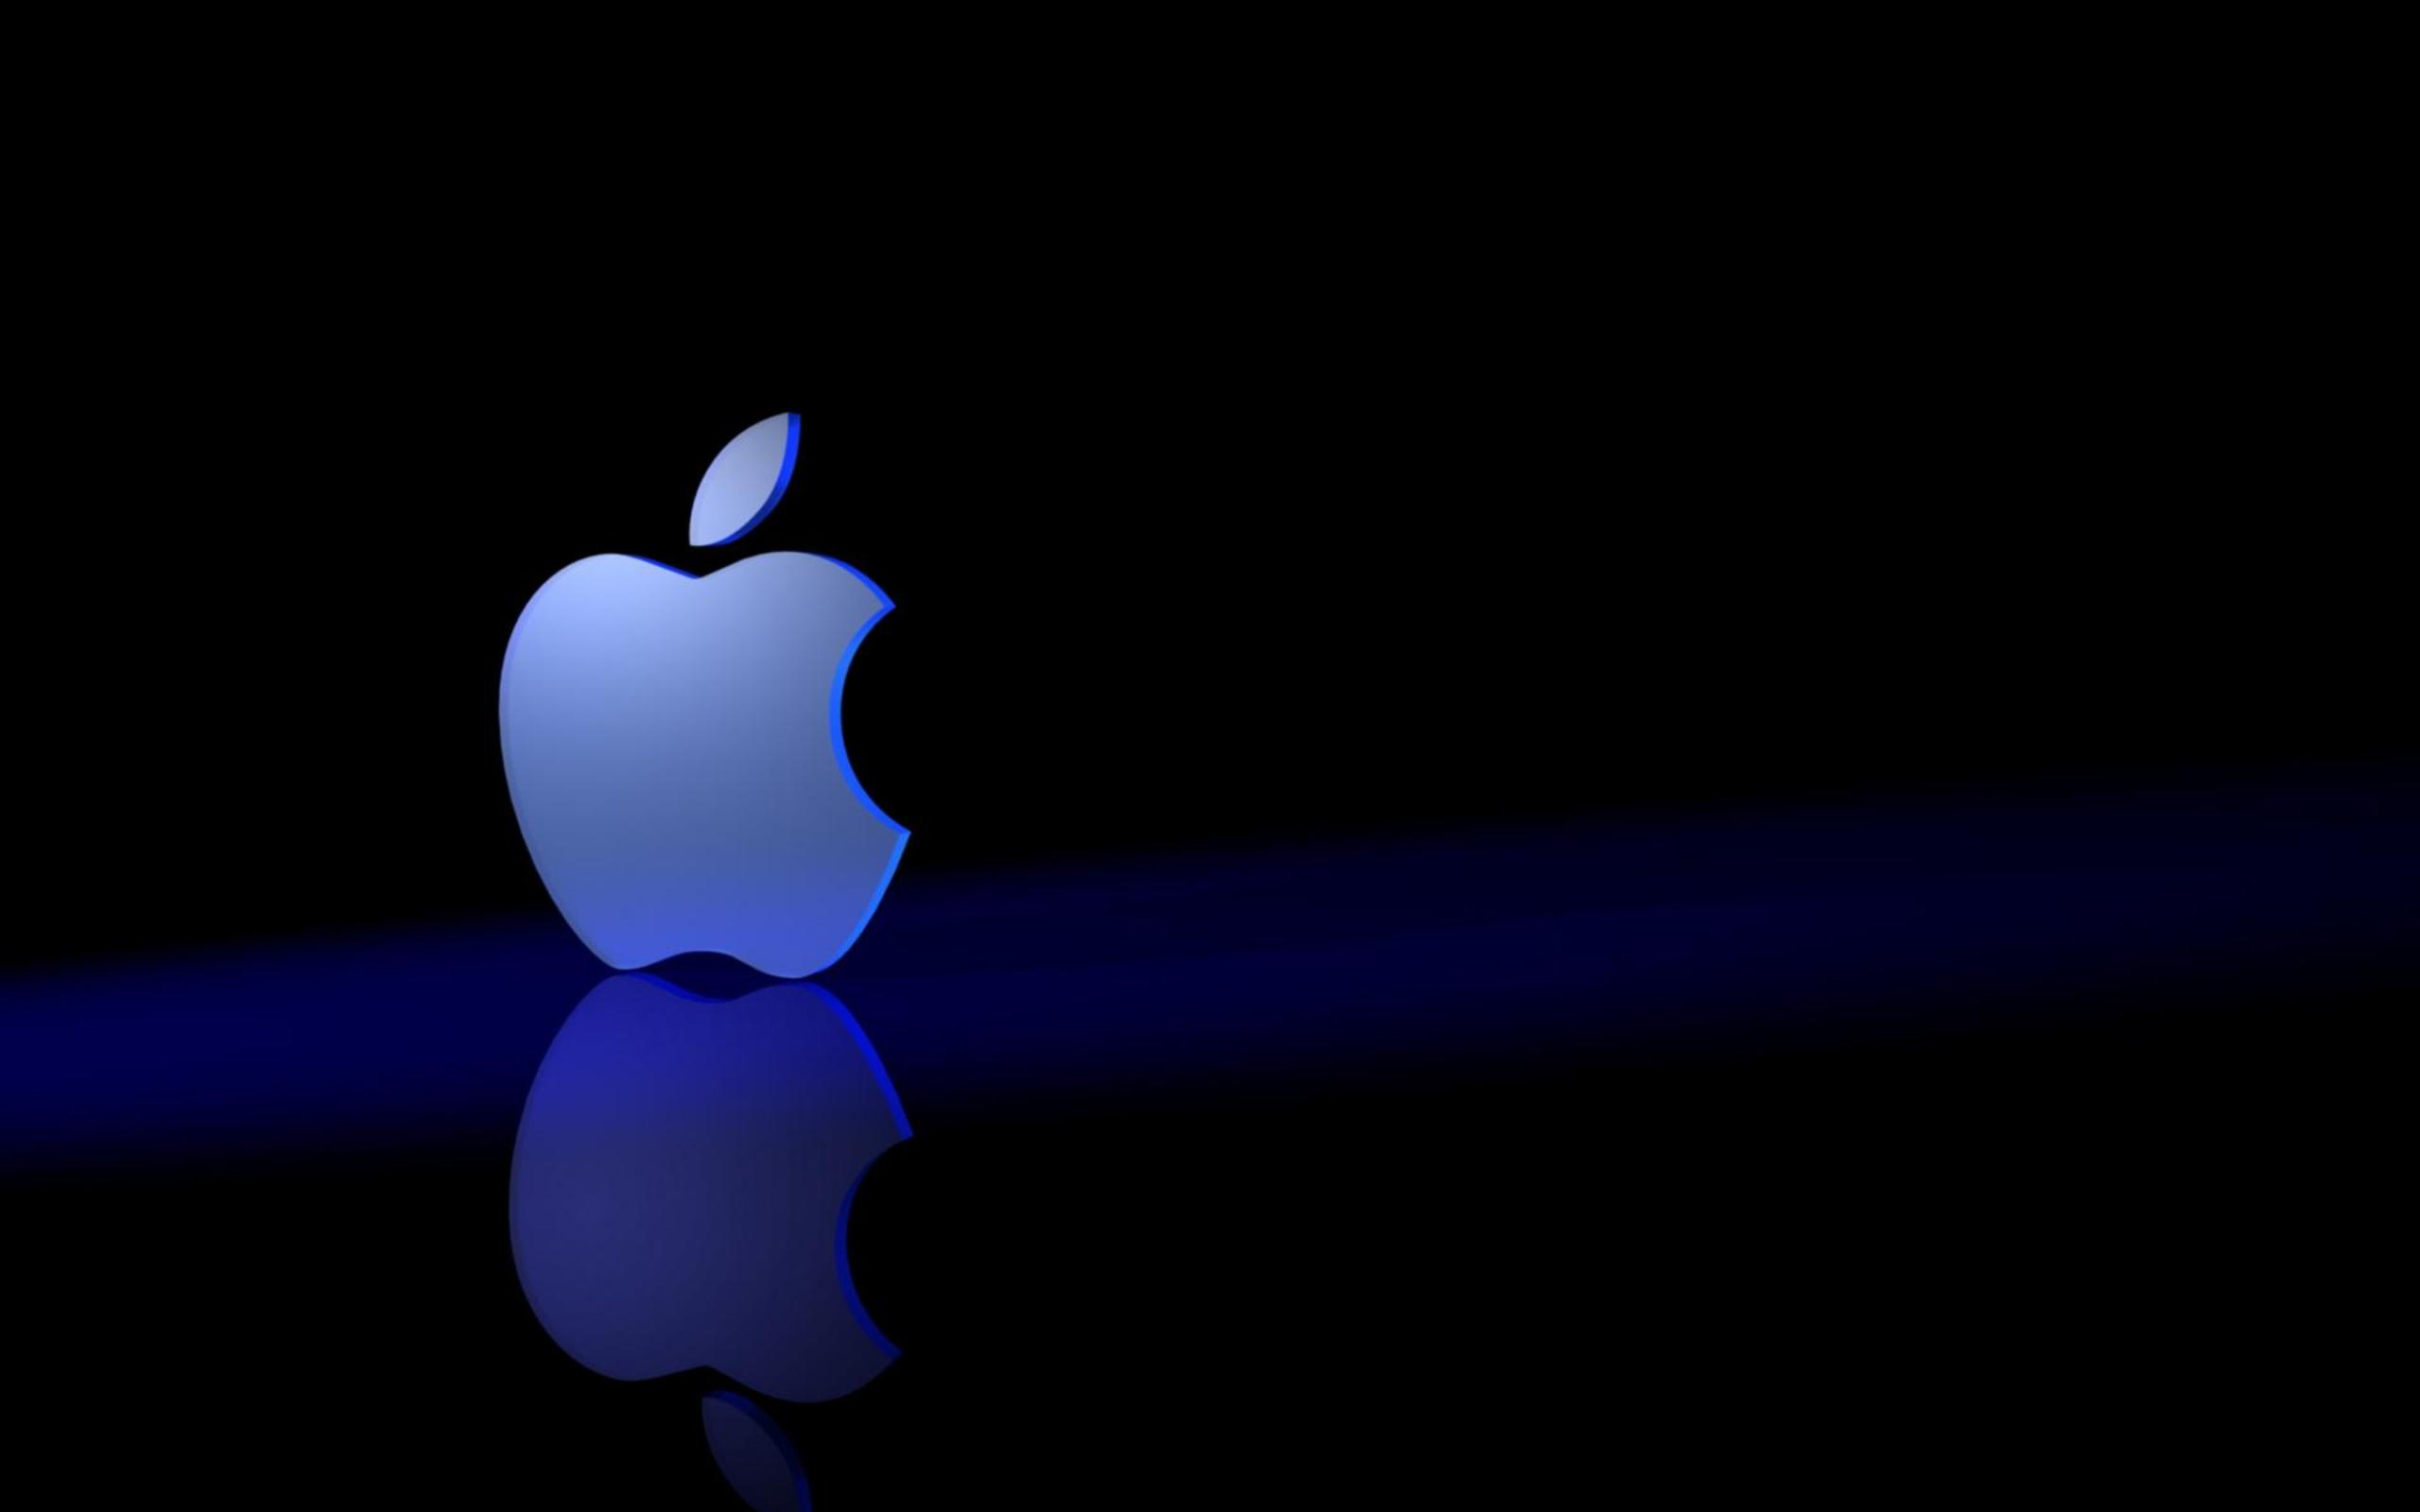 Apple Mac   Wallpaper 11959 2560x1600